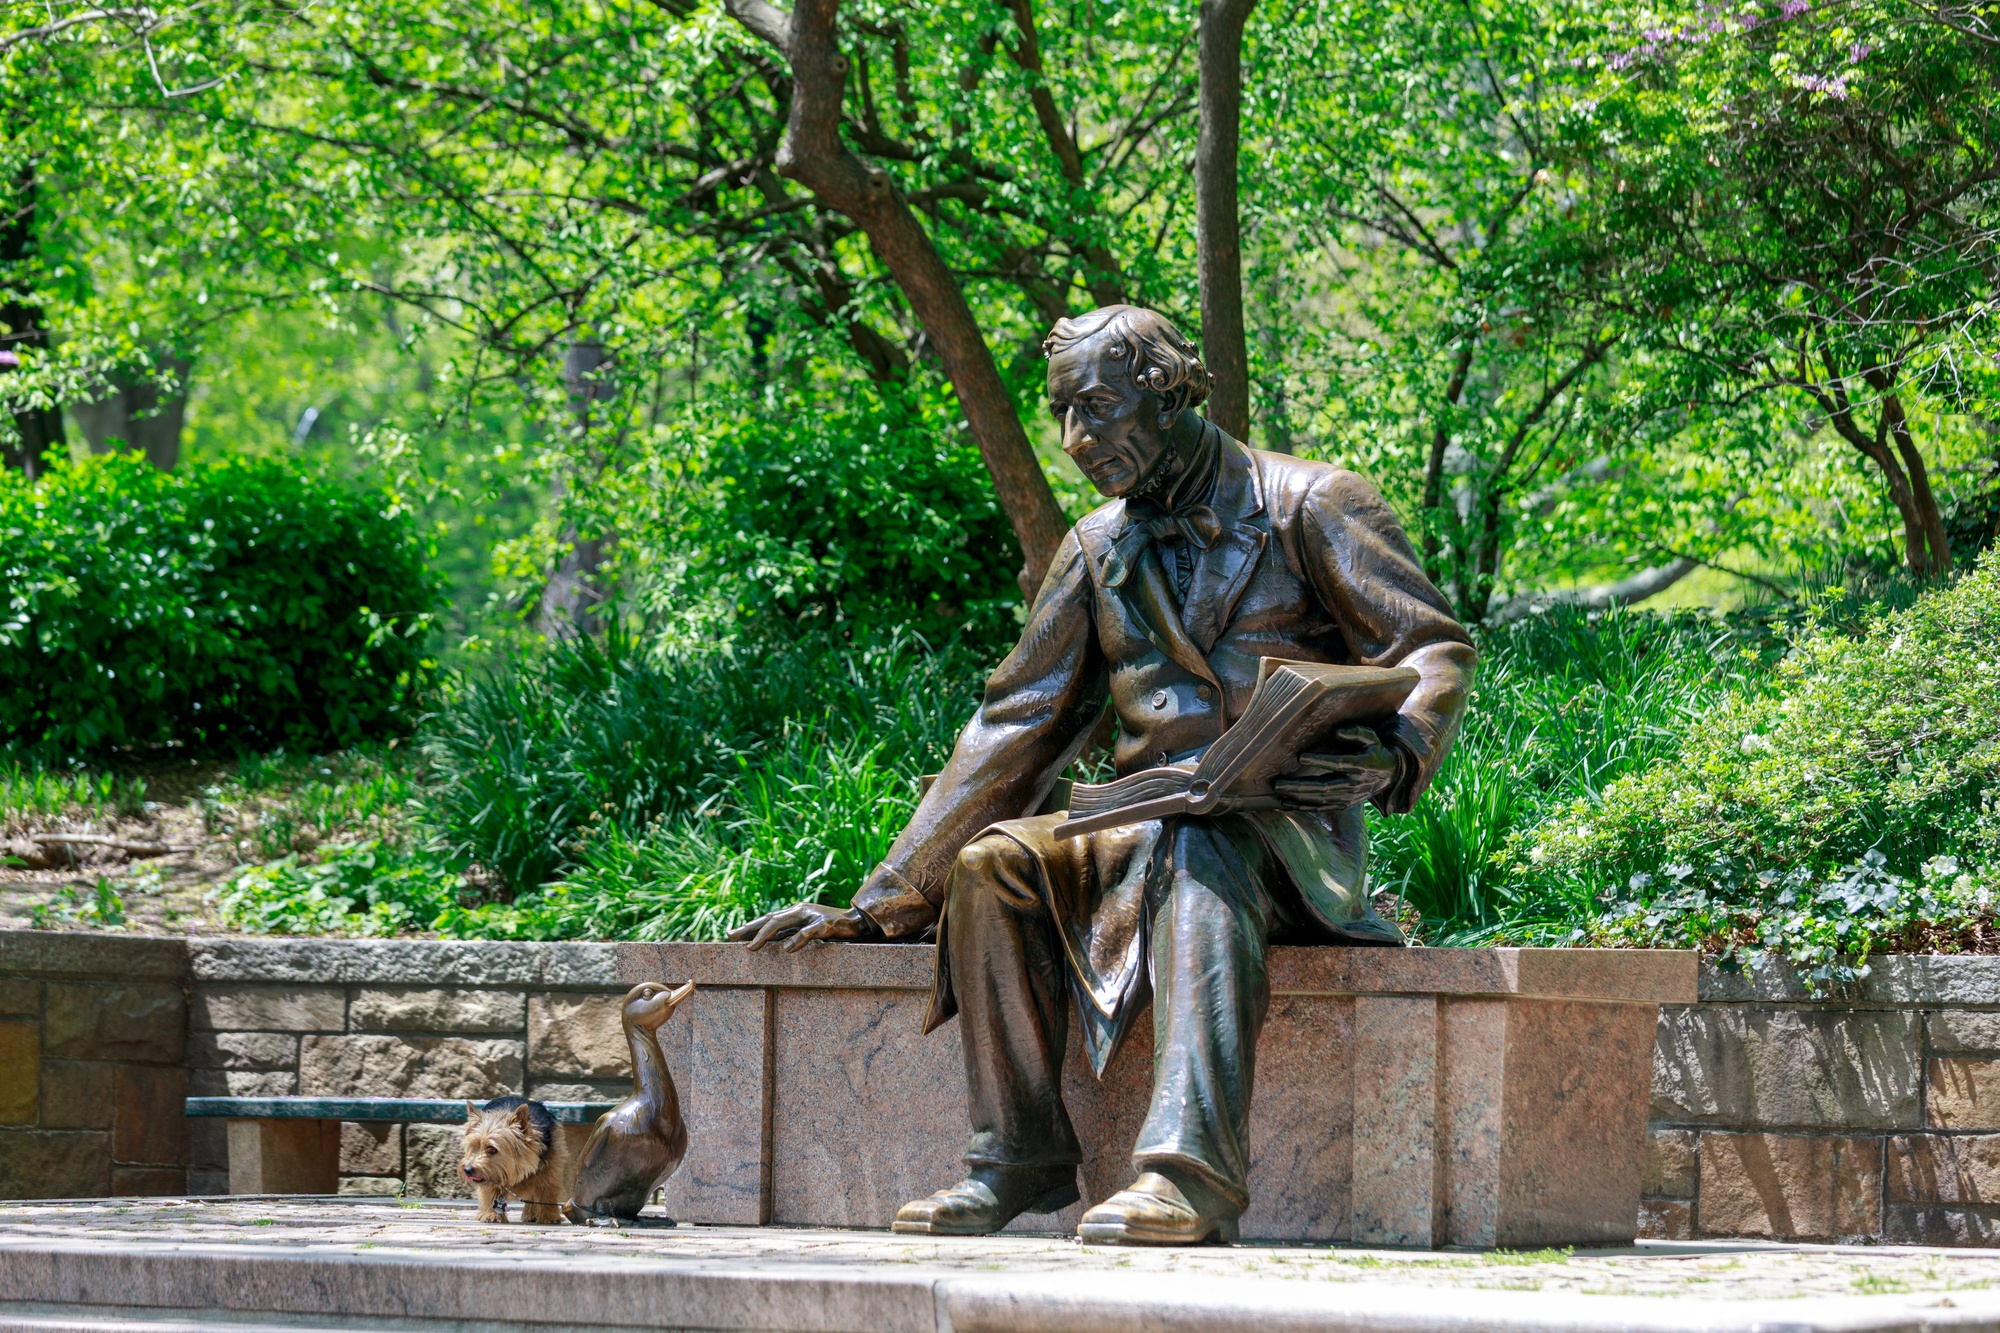 Hans Christian Andersen sculpture in NYC Central Park